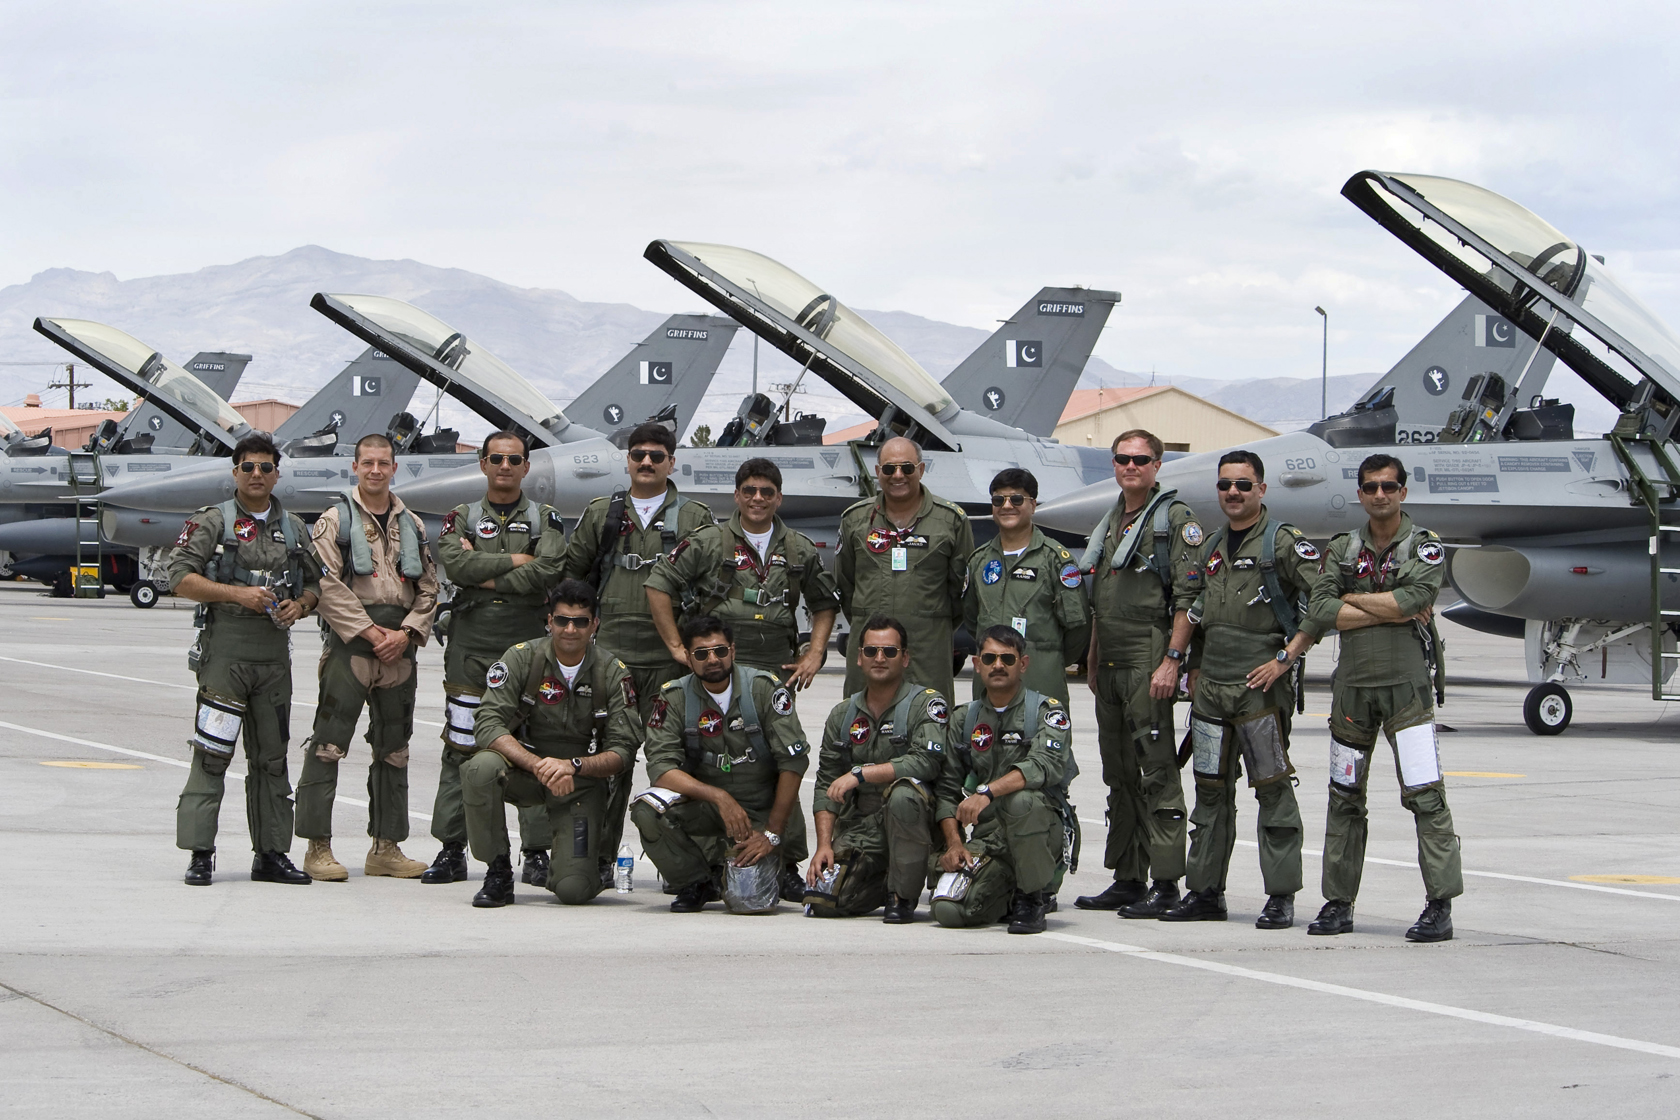 Pakistan Air Force is the aerial warfare branch of the Pakistan Armed Forces, tasked primarily with the aerial defence of Pakistan, with a secondary role of providing air support to the Pakistan Army and the Pakistan Navy